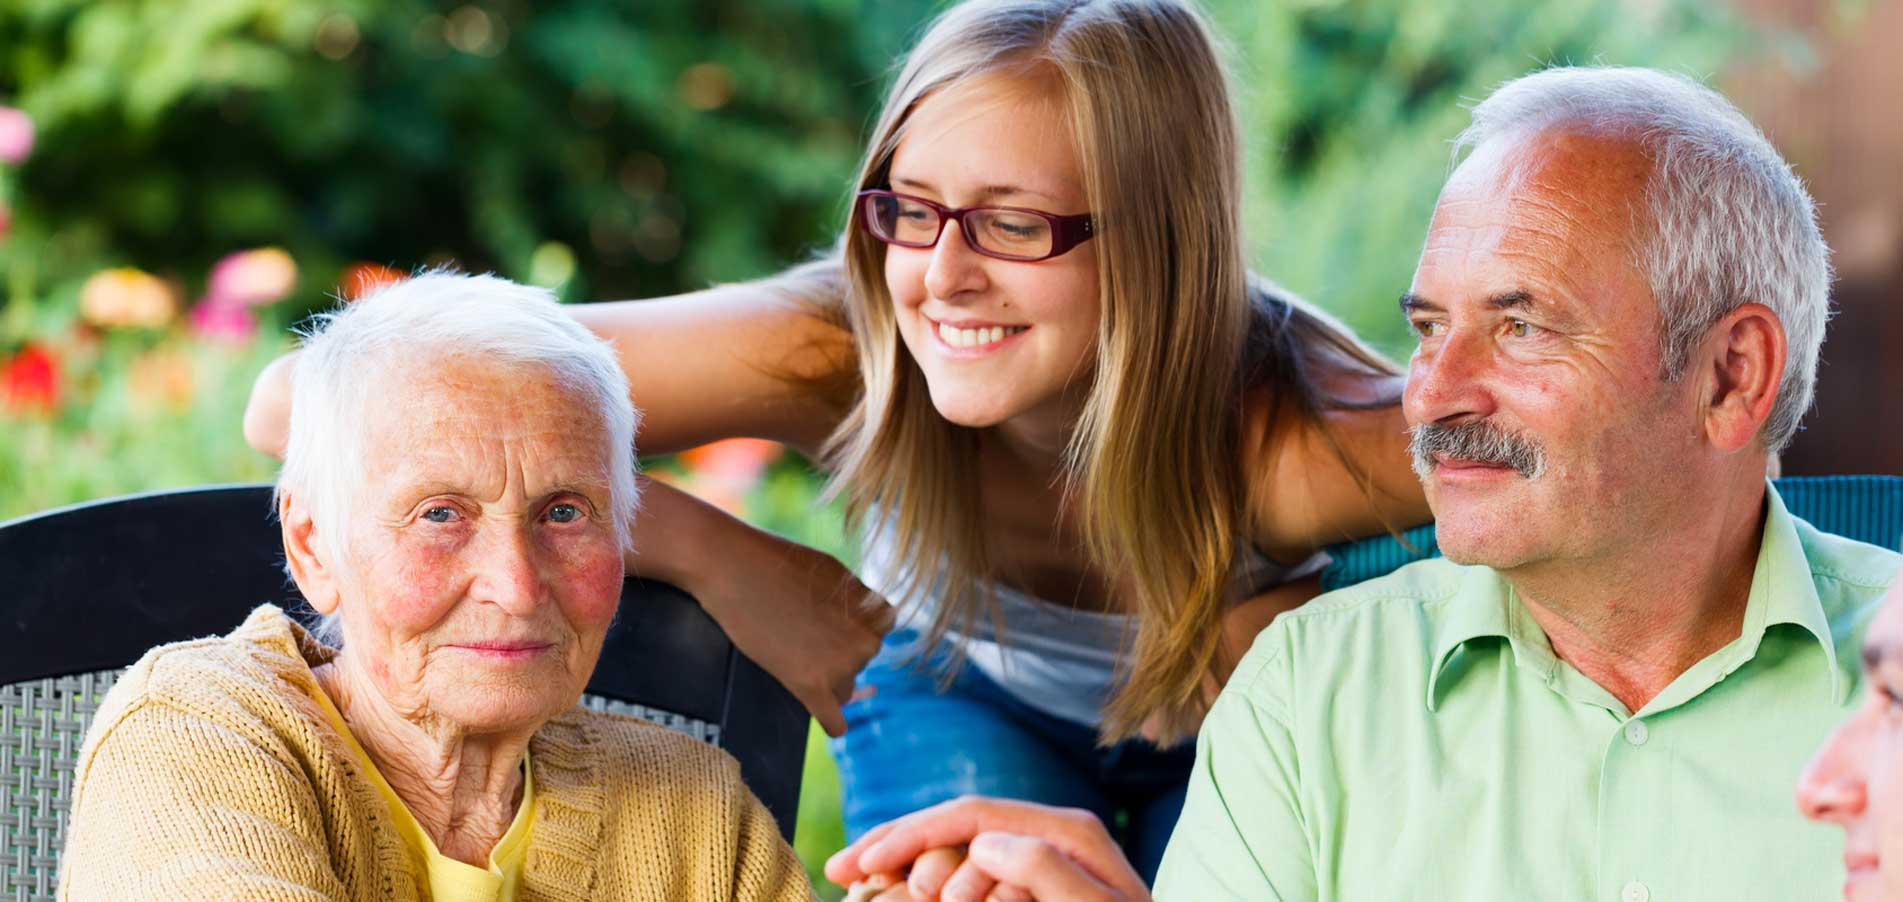 elderly couple and granddaughter